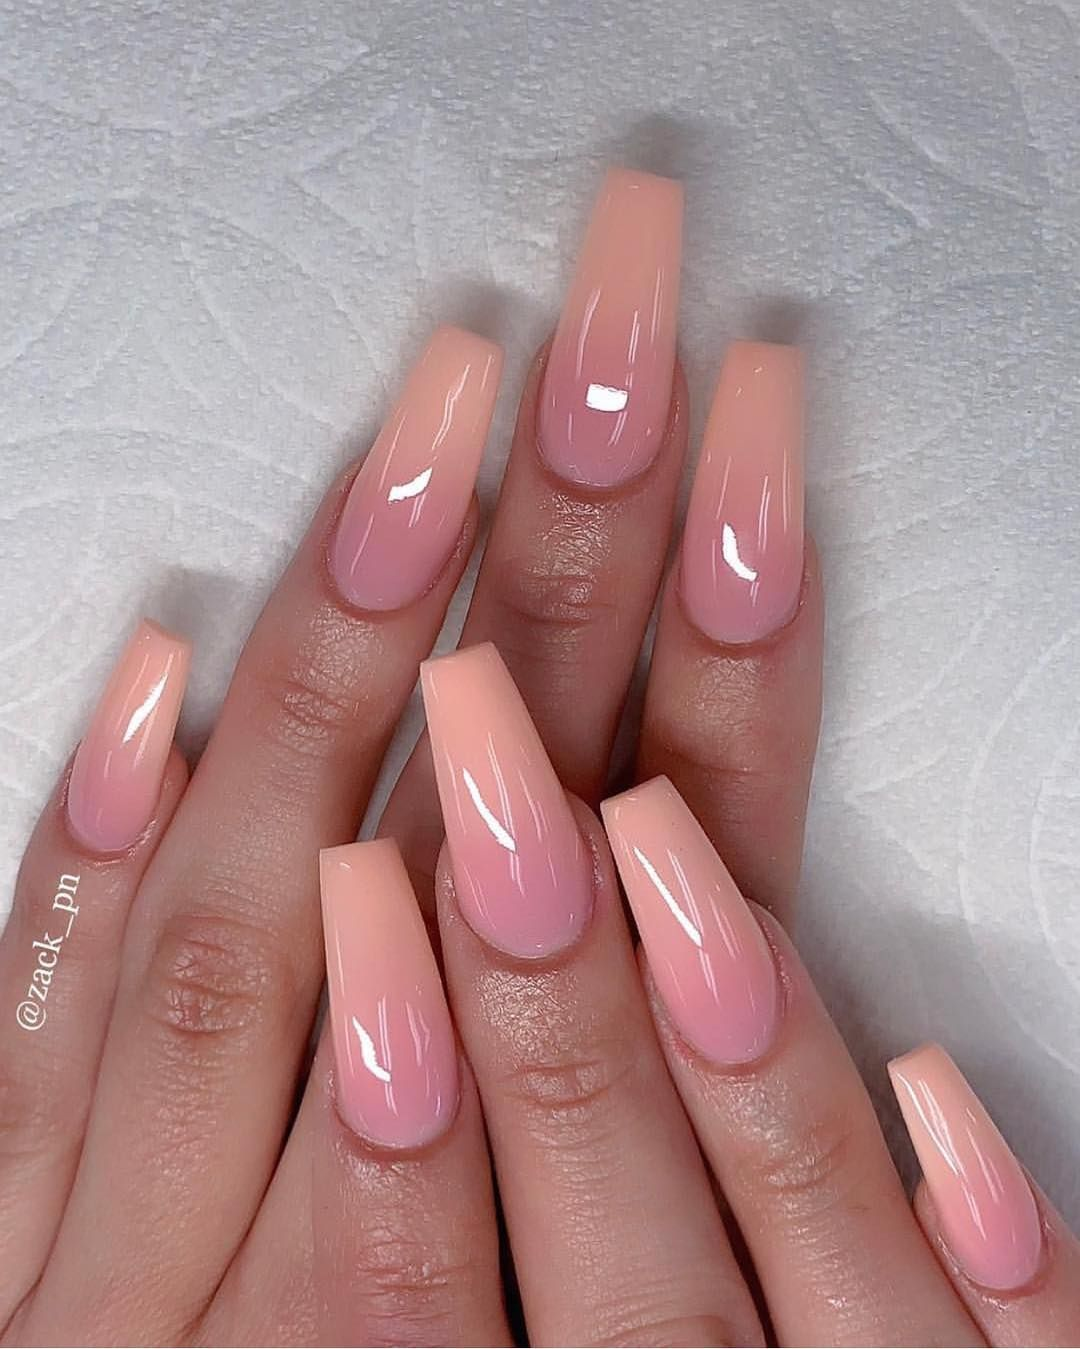 Bomb Manicure Ideas Pink Ombre Nails Ombre Nail Designs Coffin Nails Designs